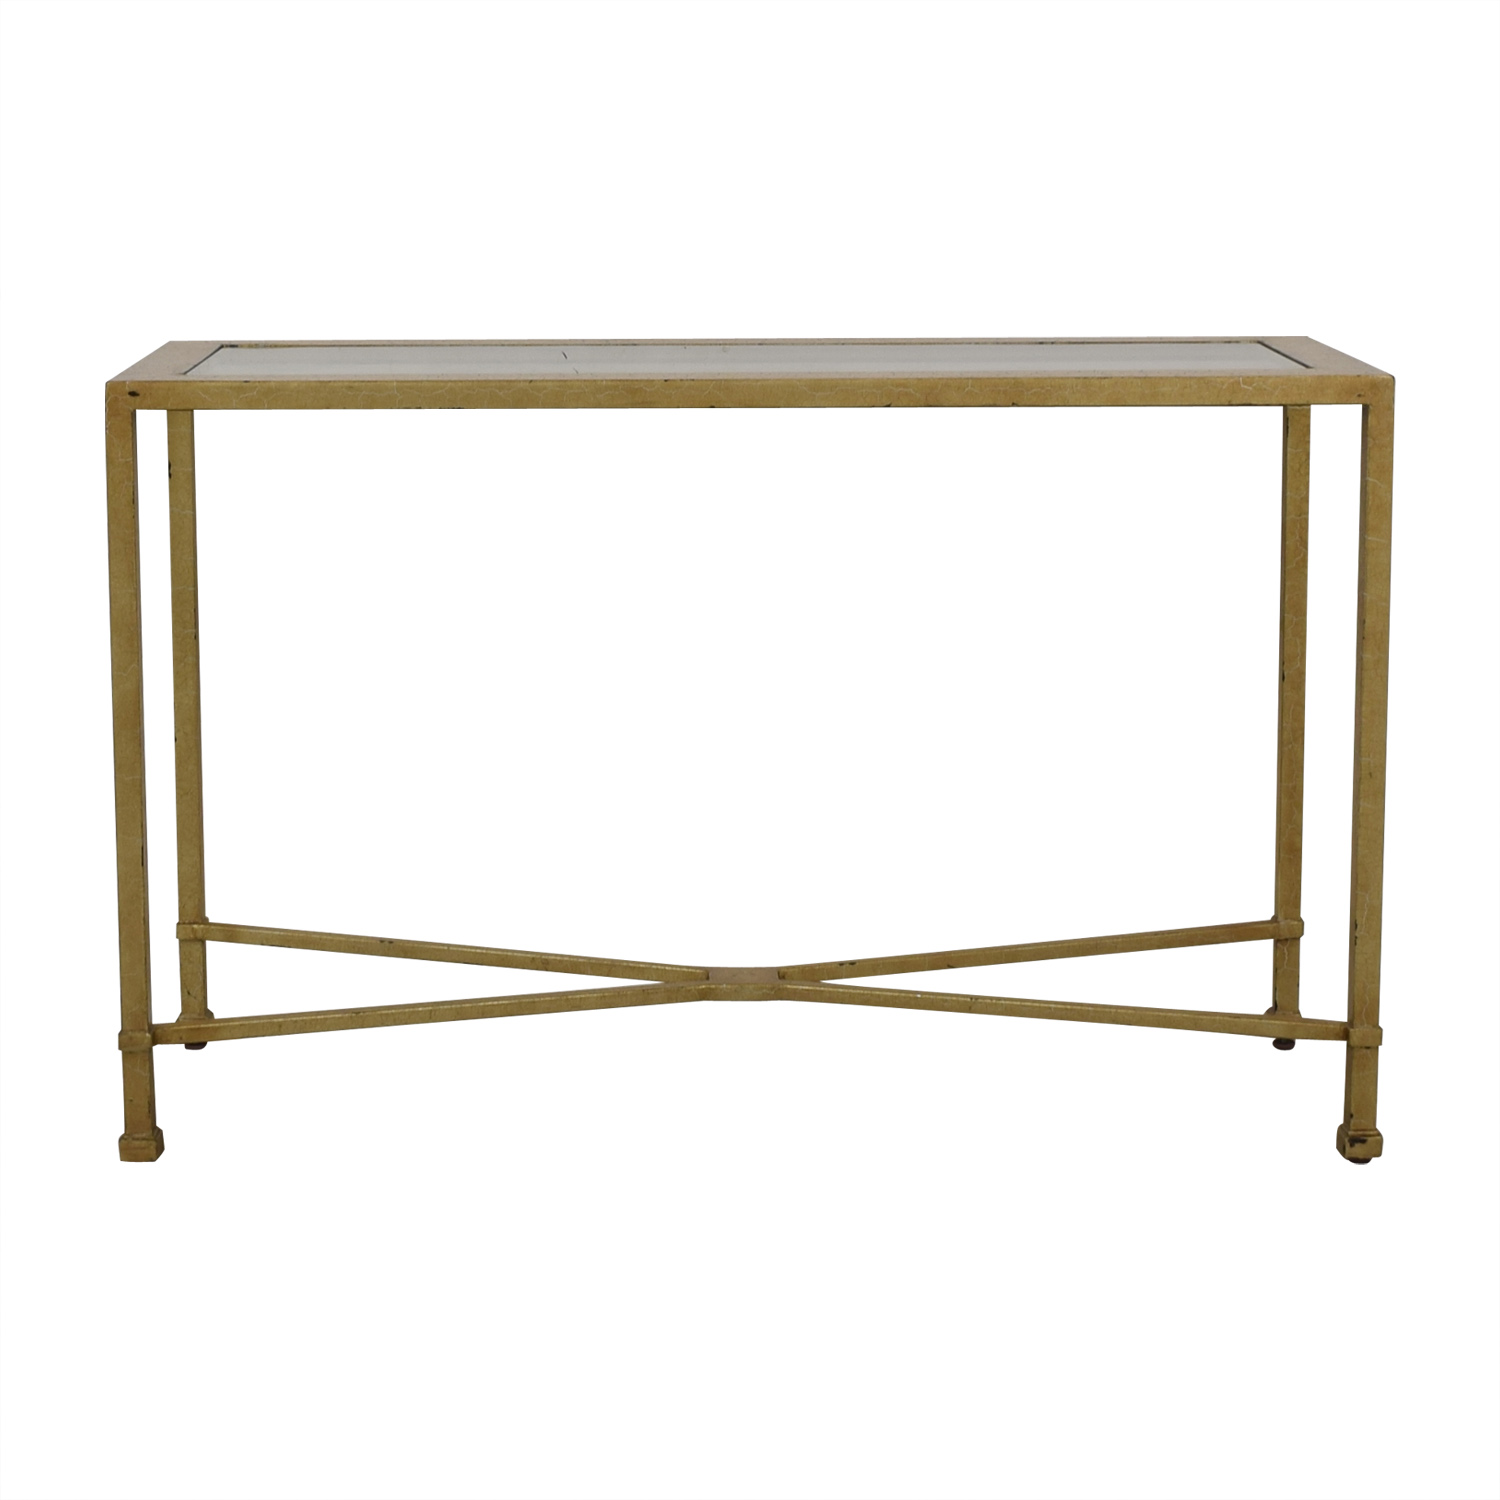 Antique Gold and Glass Foyer Table gold